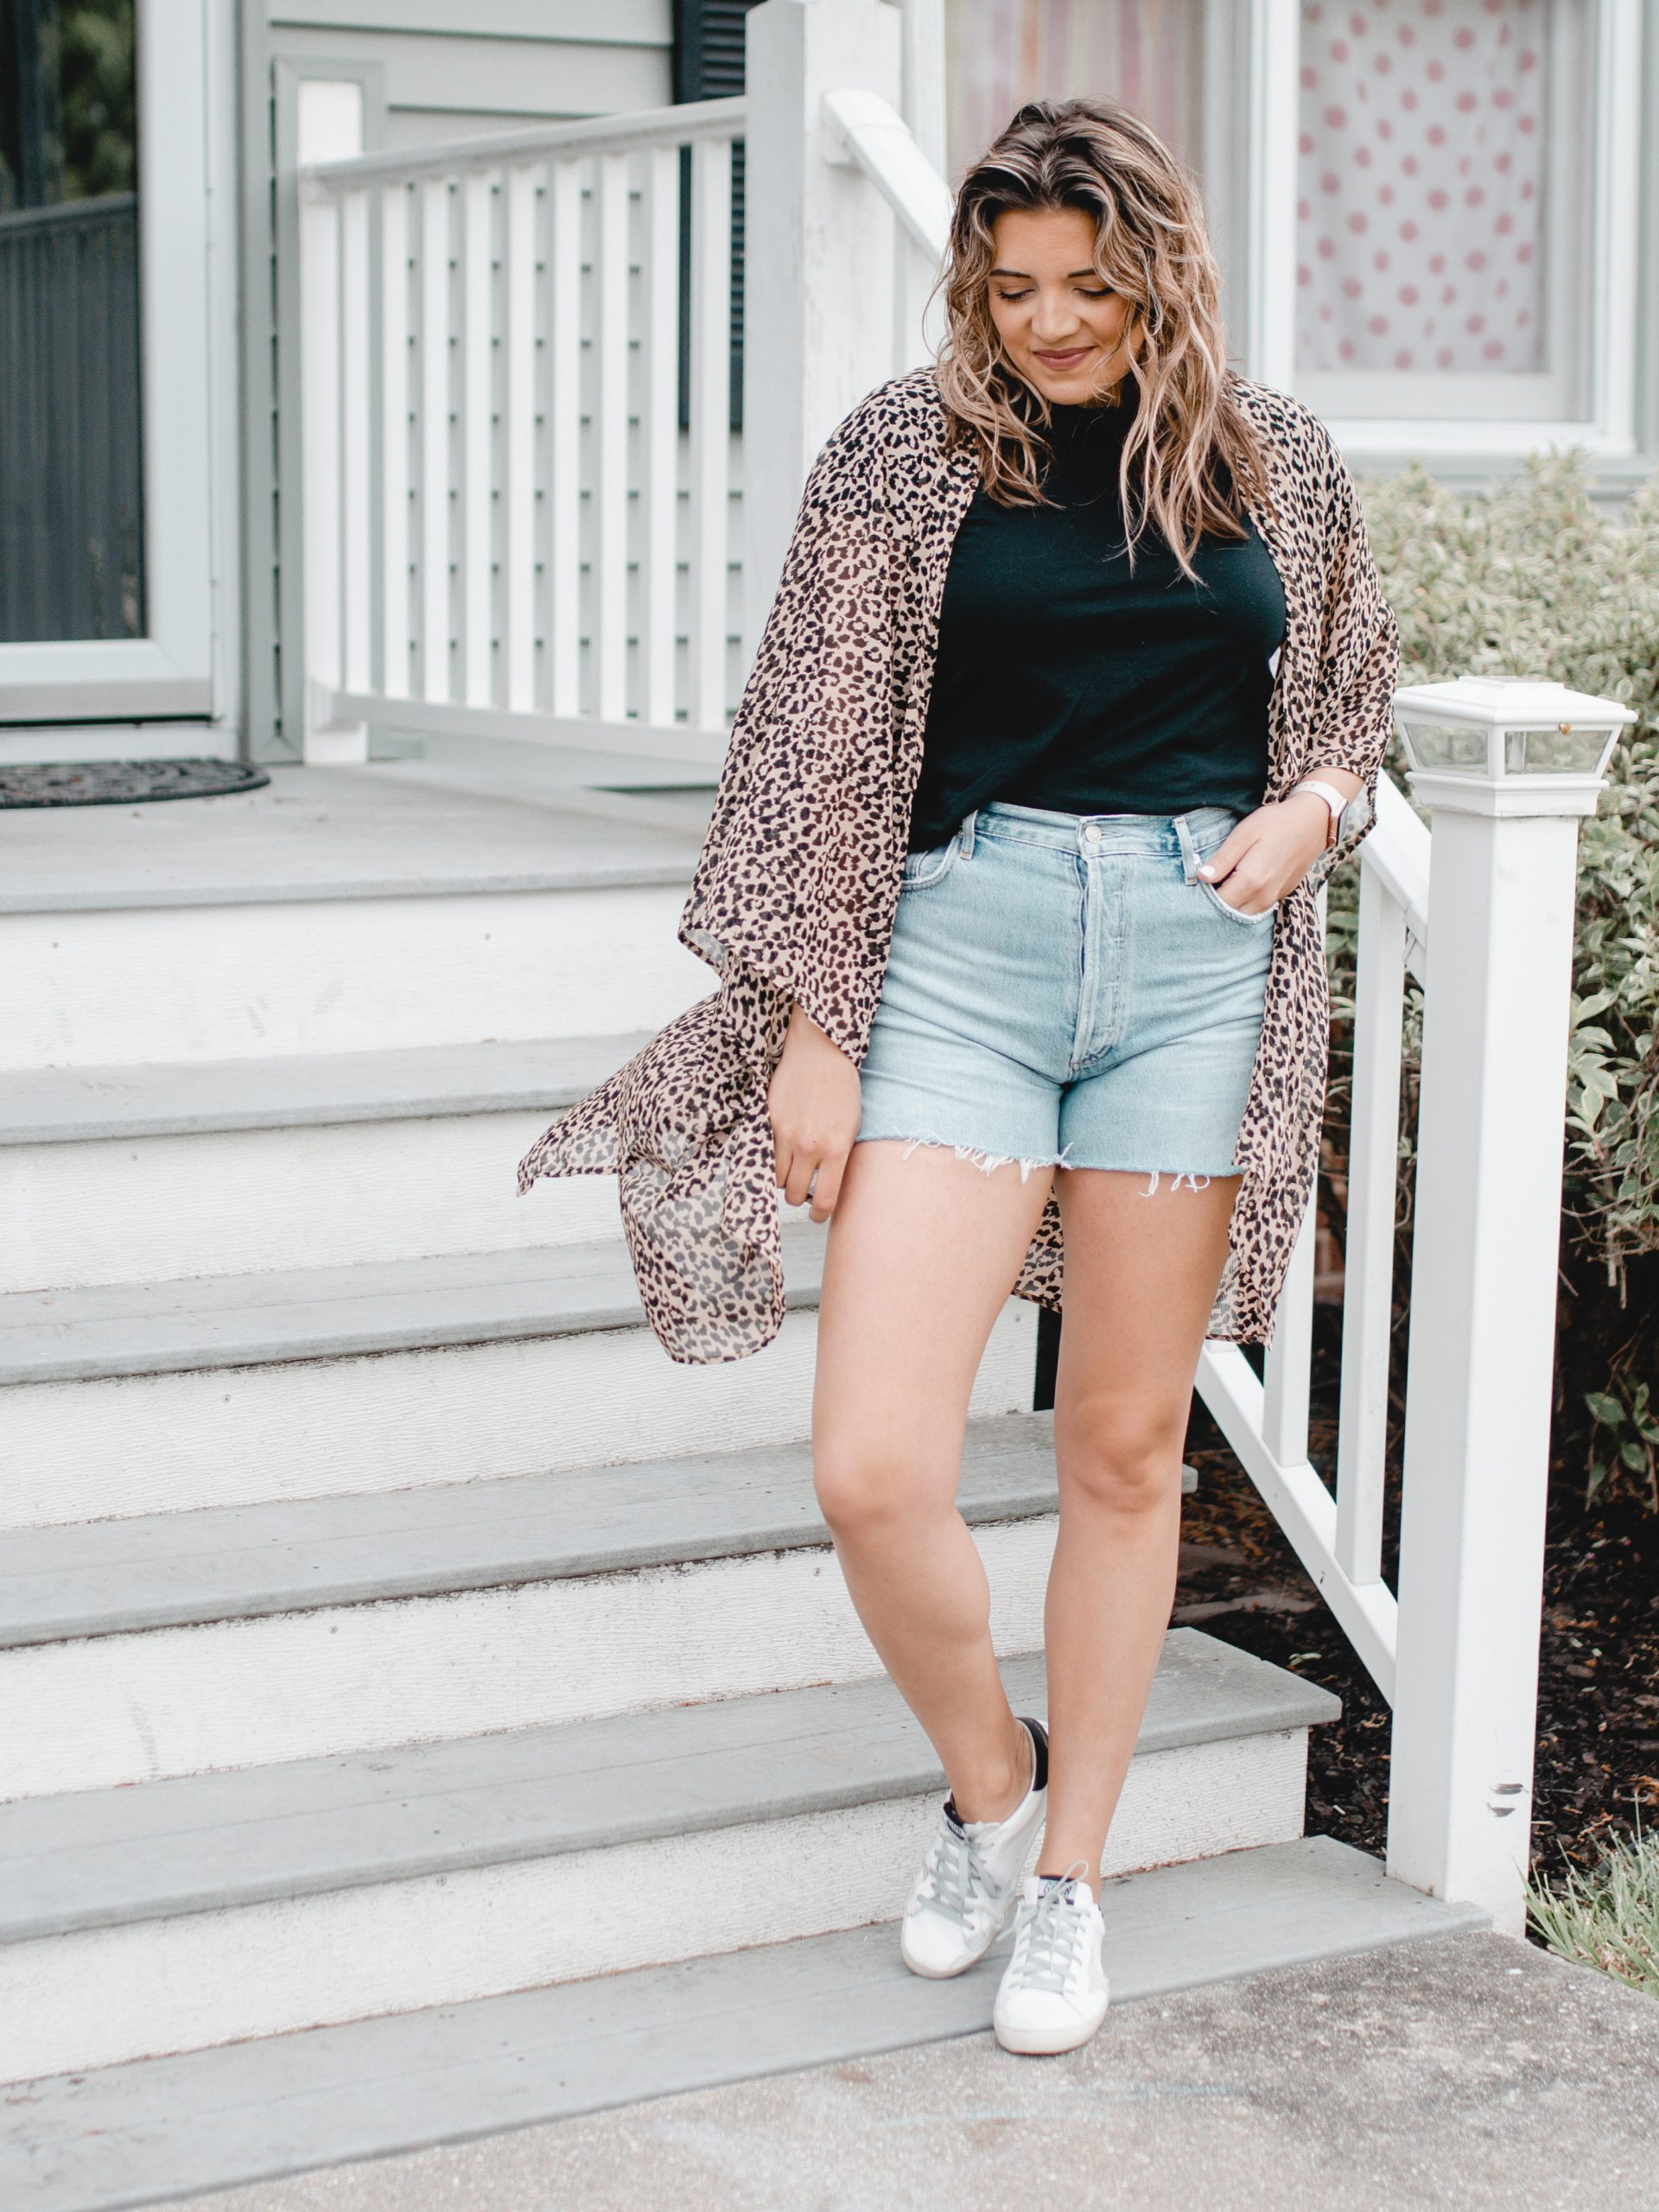 Virginia blogger, Lauren Dix, shares five white sneakers outfits for spring and summer!